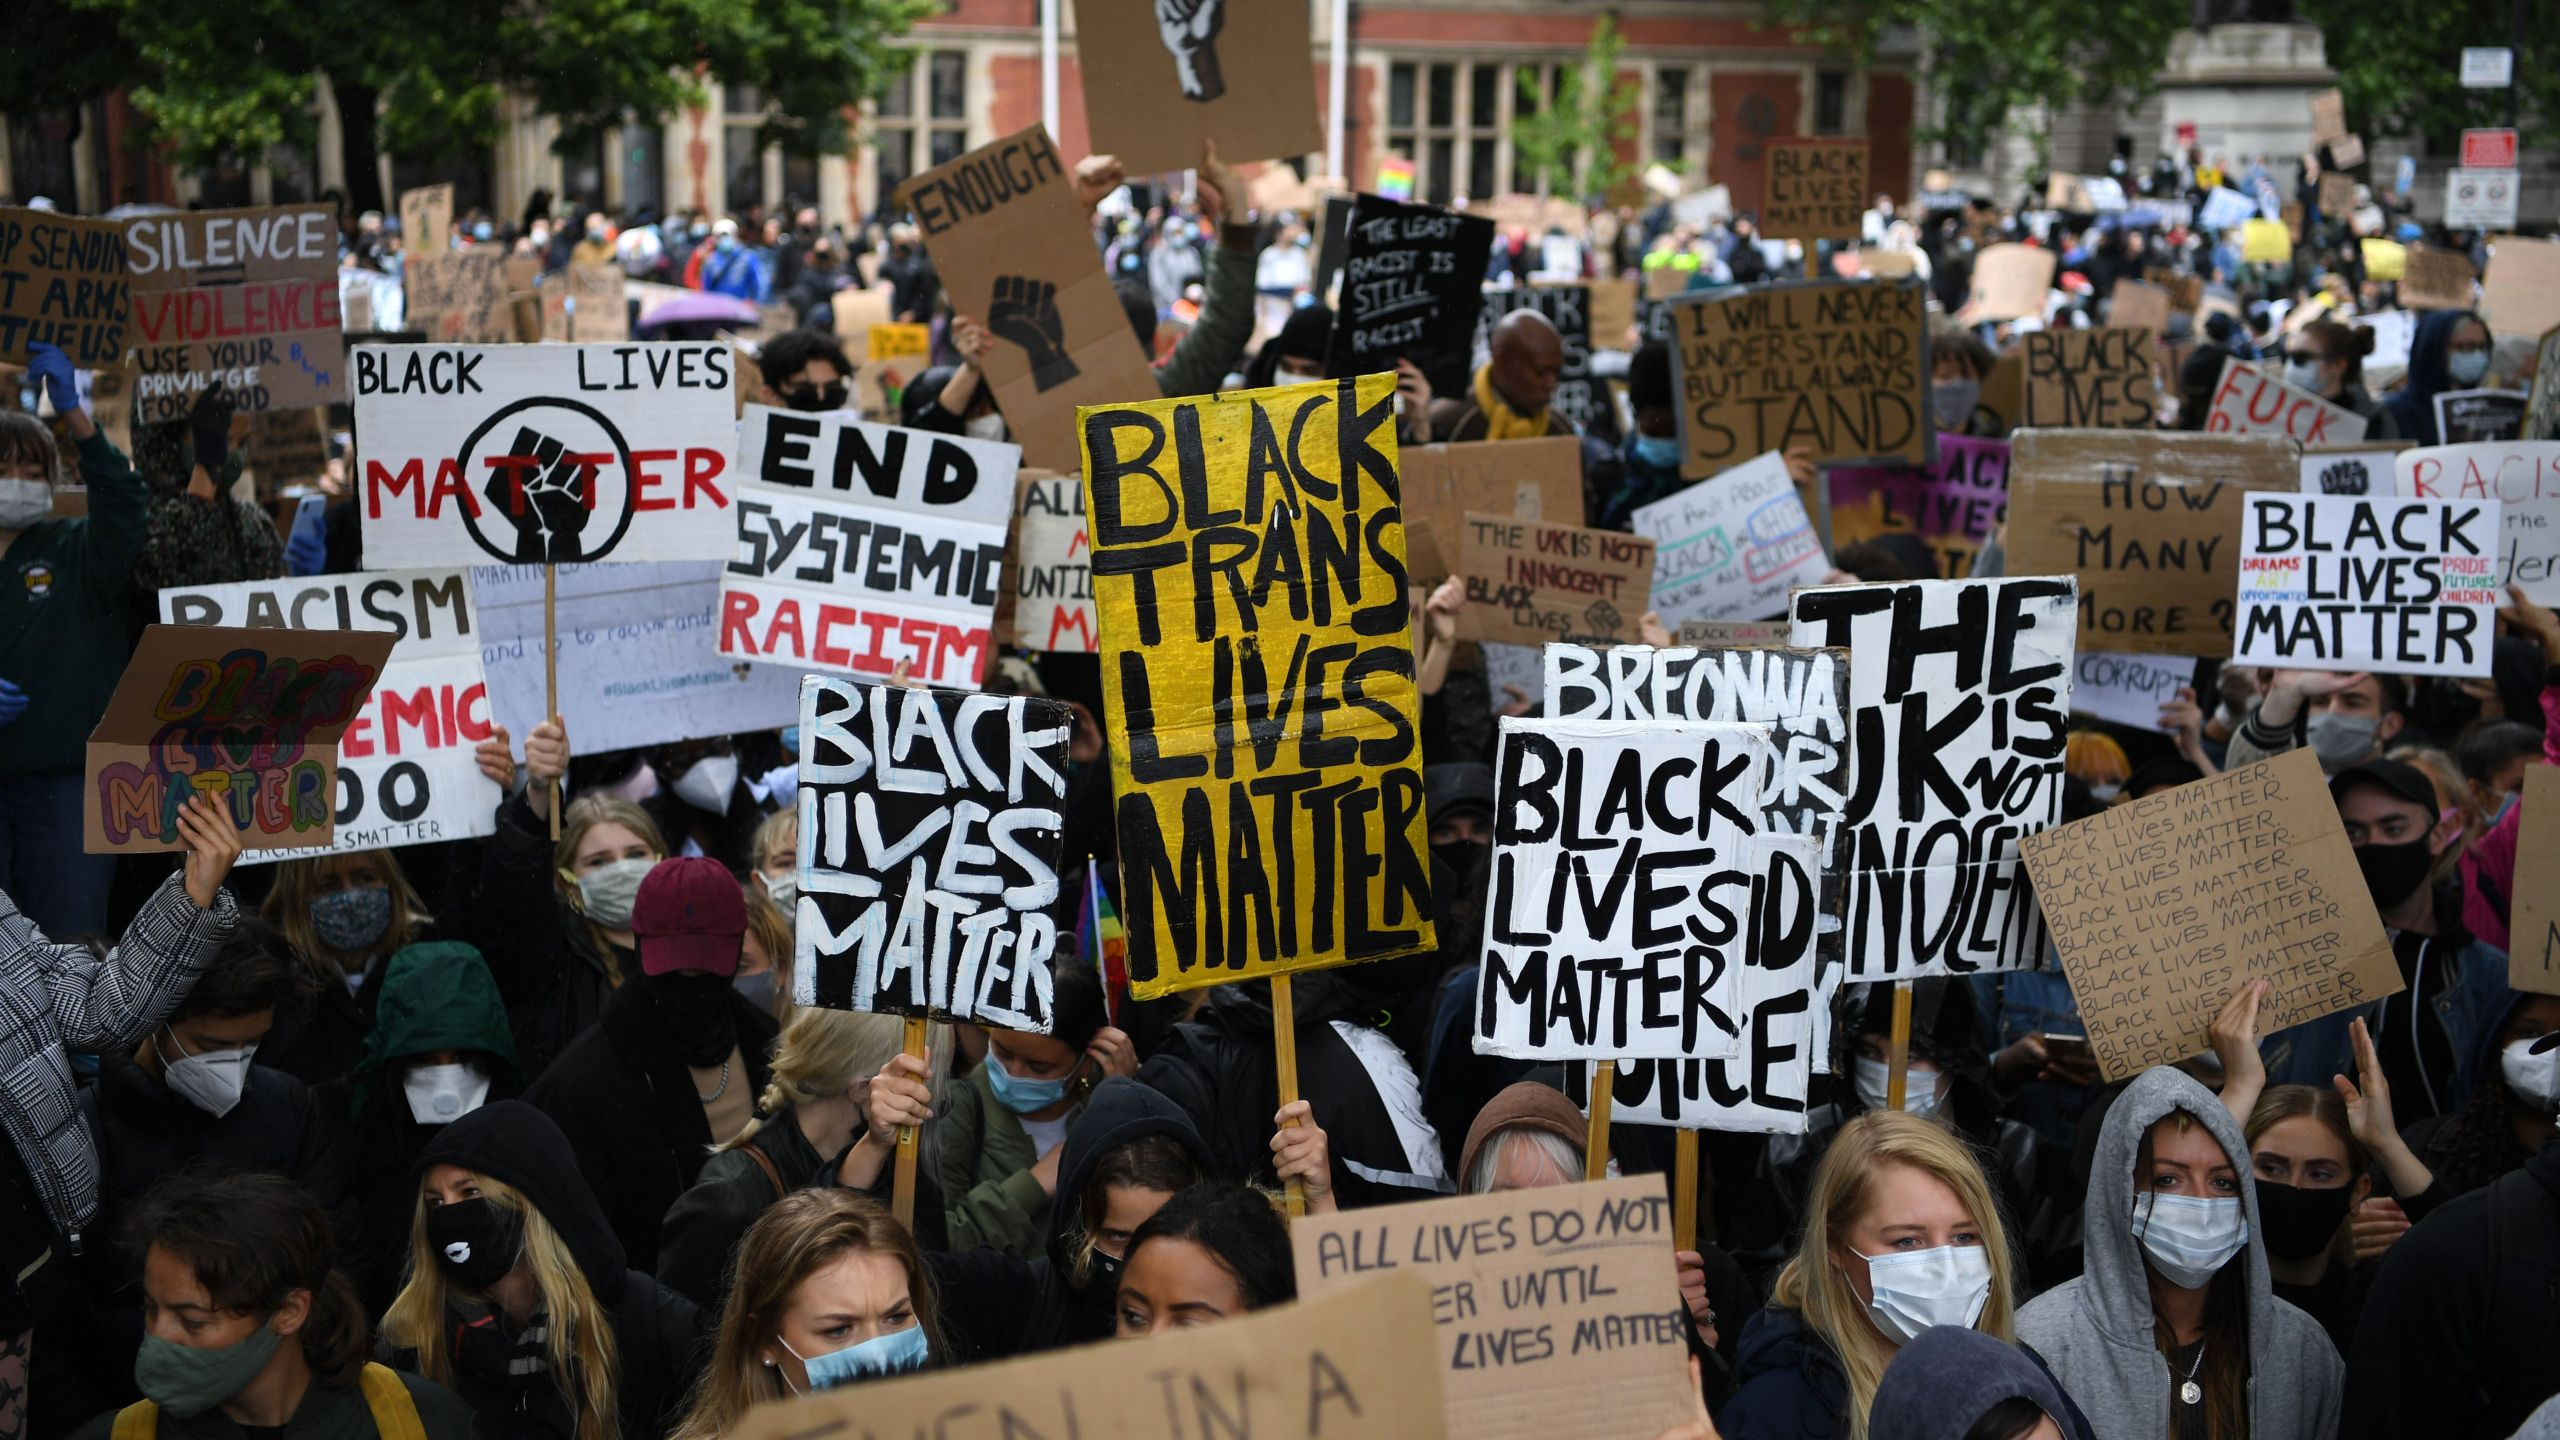 Protesters hold placards as they attend a demonstration in Parliament Square in central London on June 6, 2020, to show solidarity with the Black Lives Matter movement in the wake of the killing of George Floyd, an unarmed black man who died after a police officer knelt on his neck in Minneapolis. (DANIEL LEAL-OLIVAS / AFP via Getty Images)